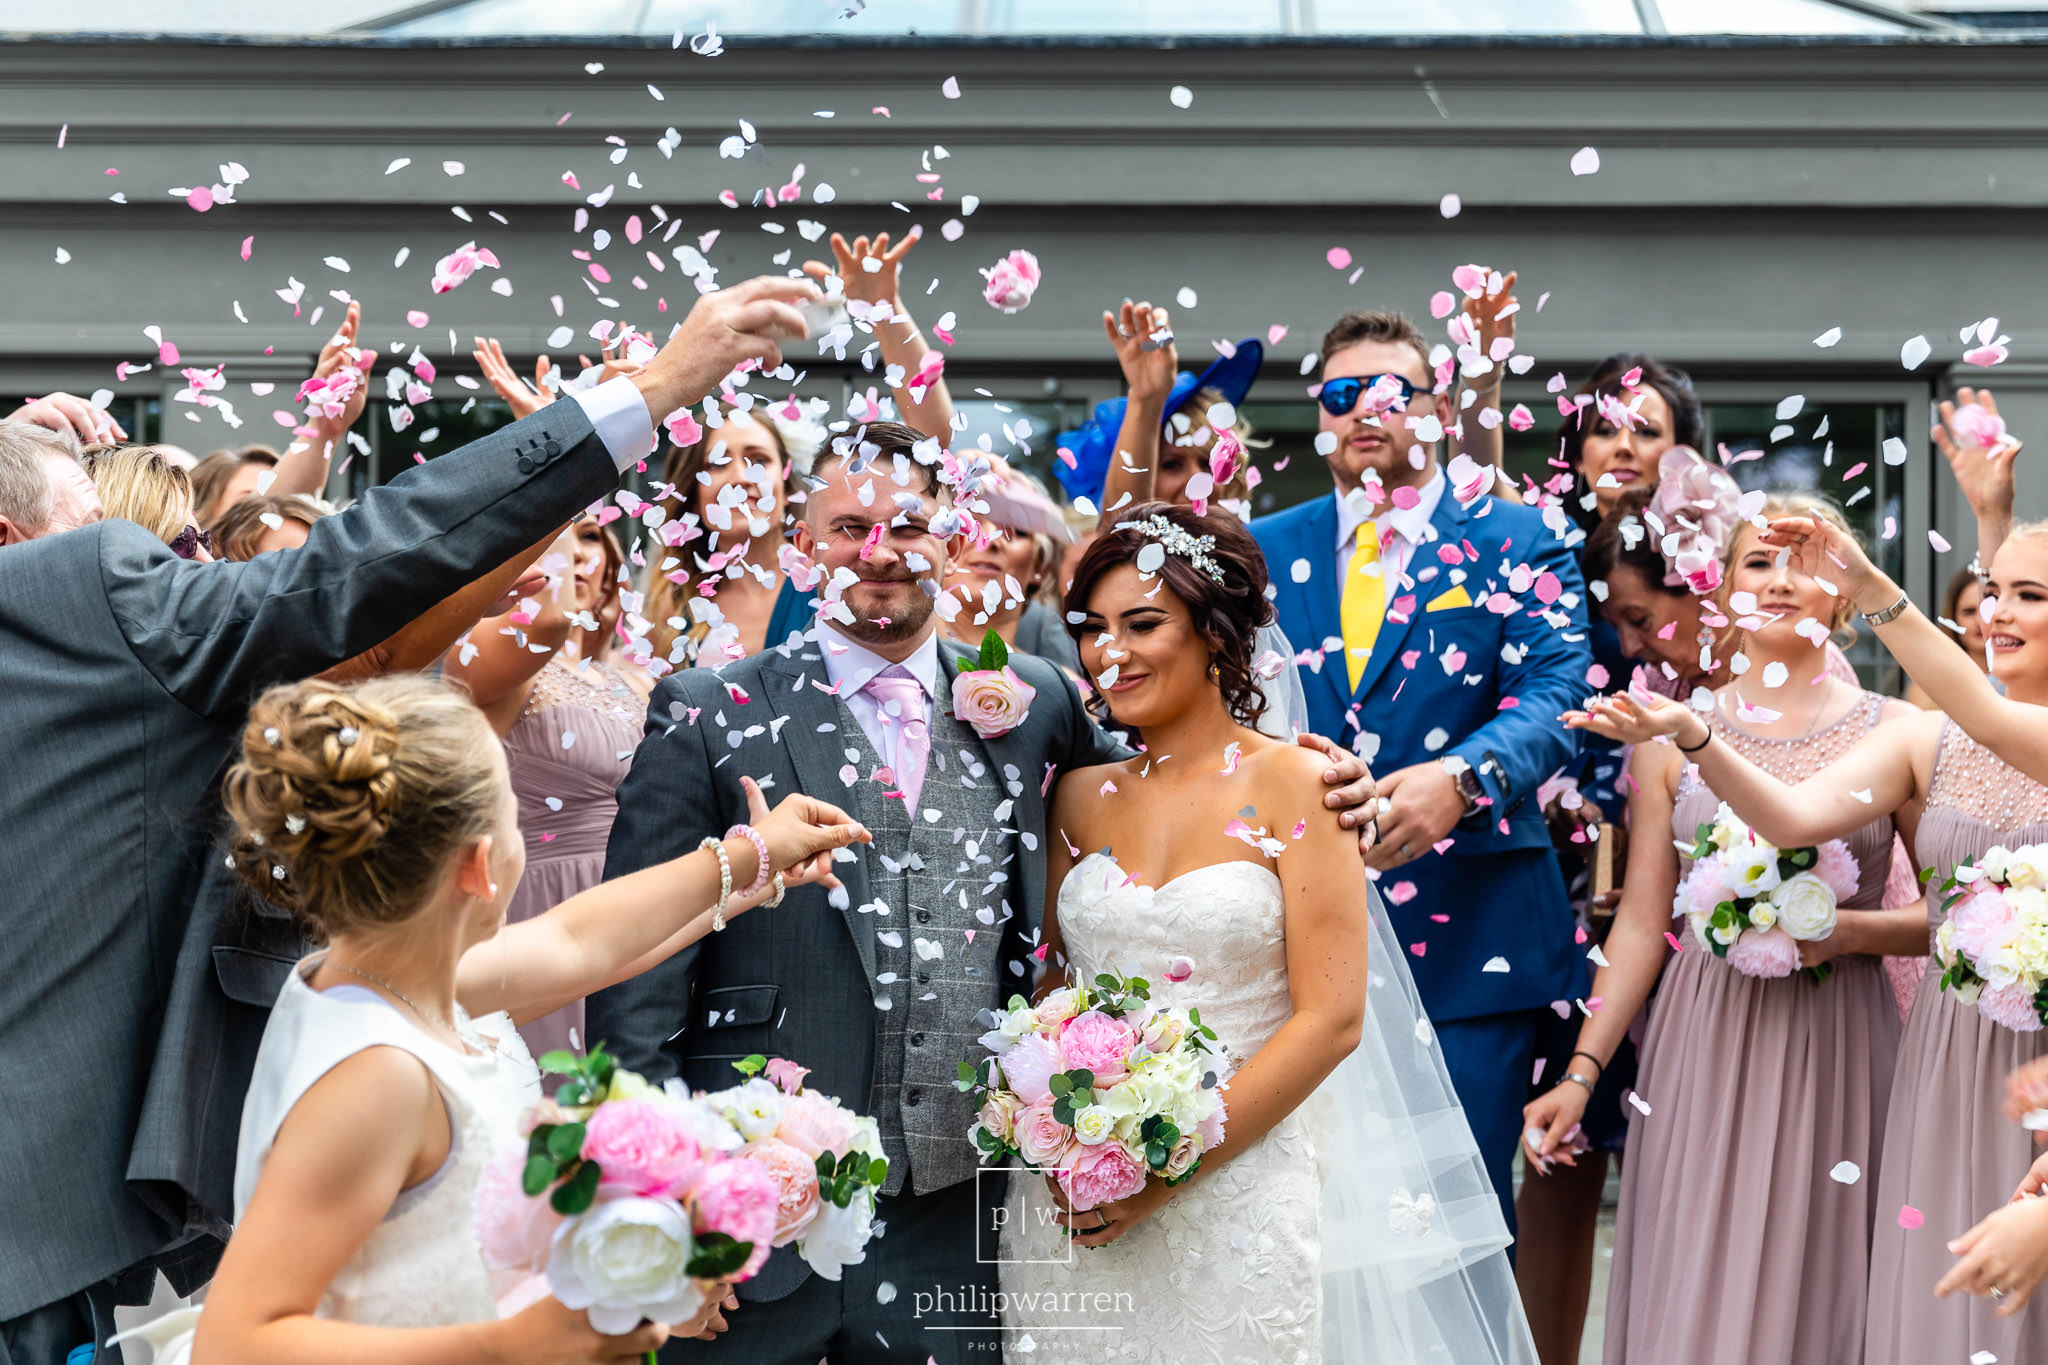 guests throwing colourful confetti at bride and groom